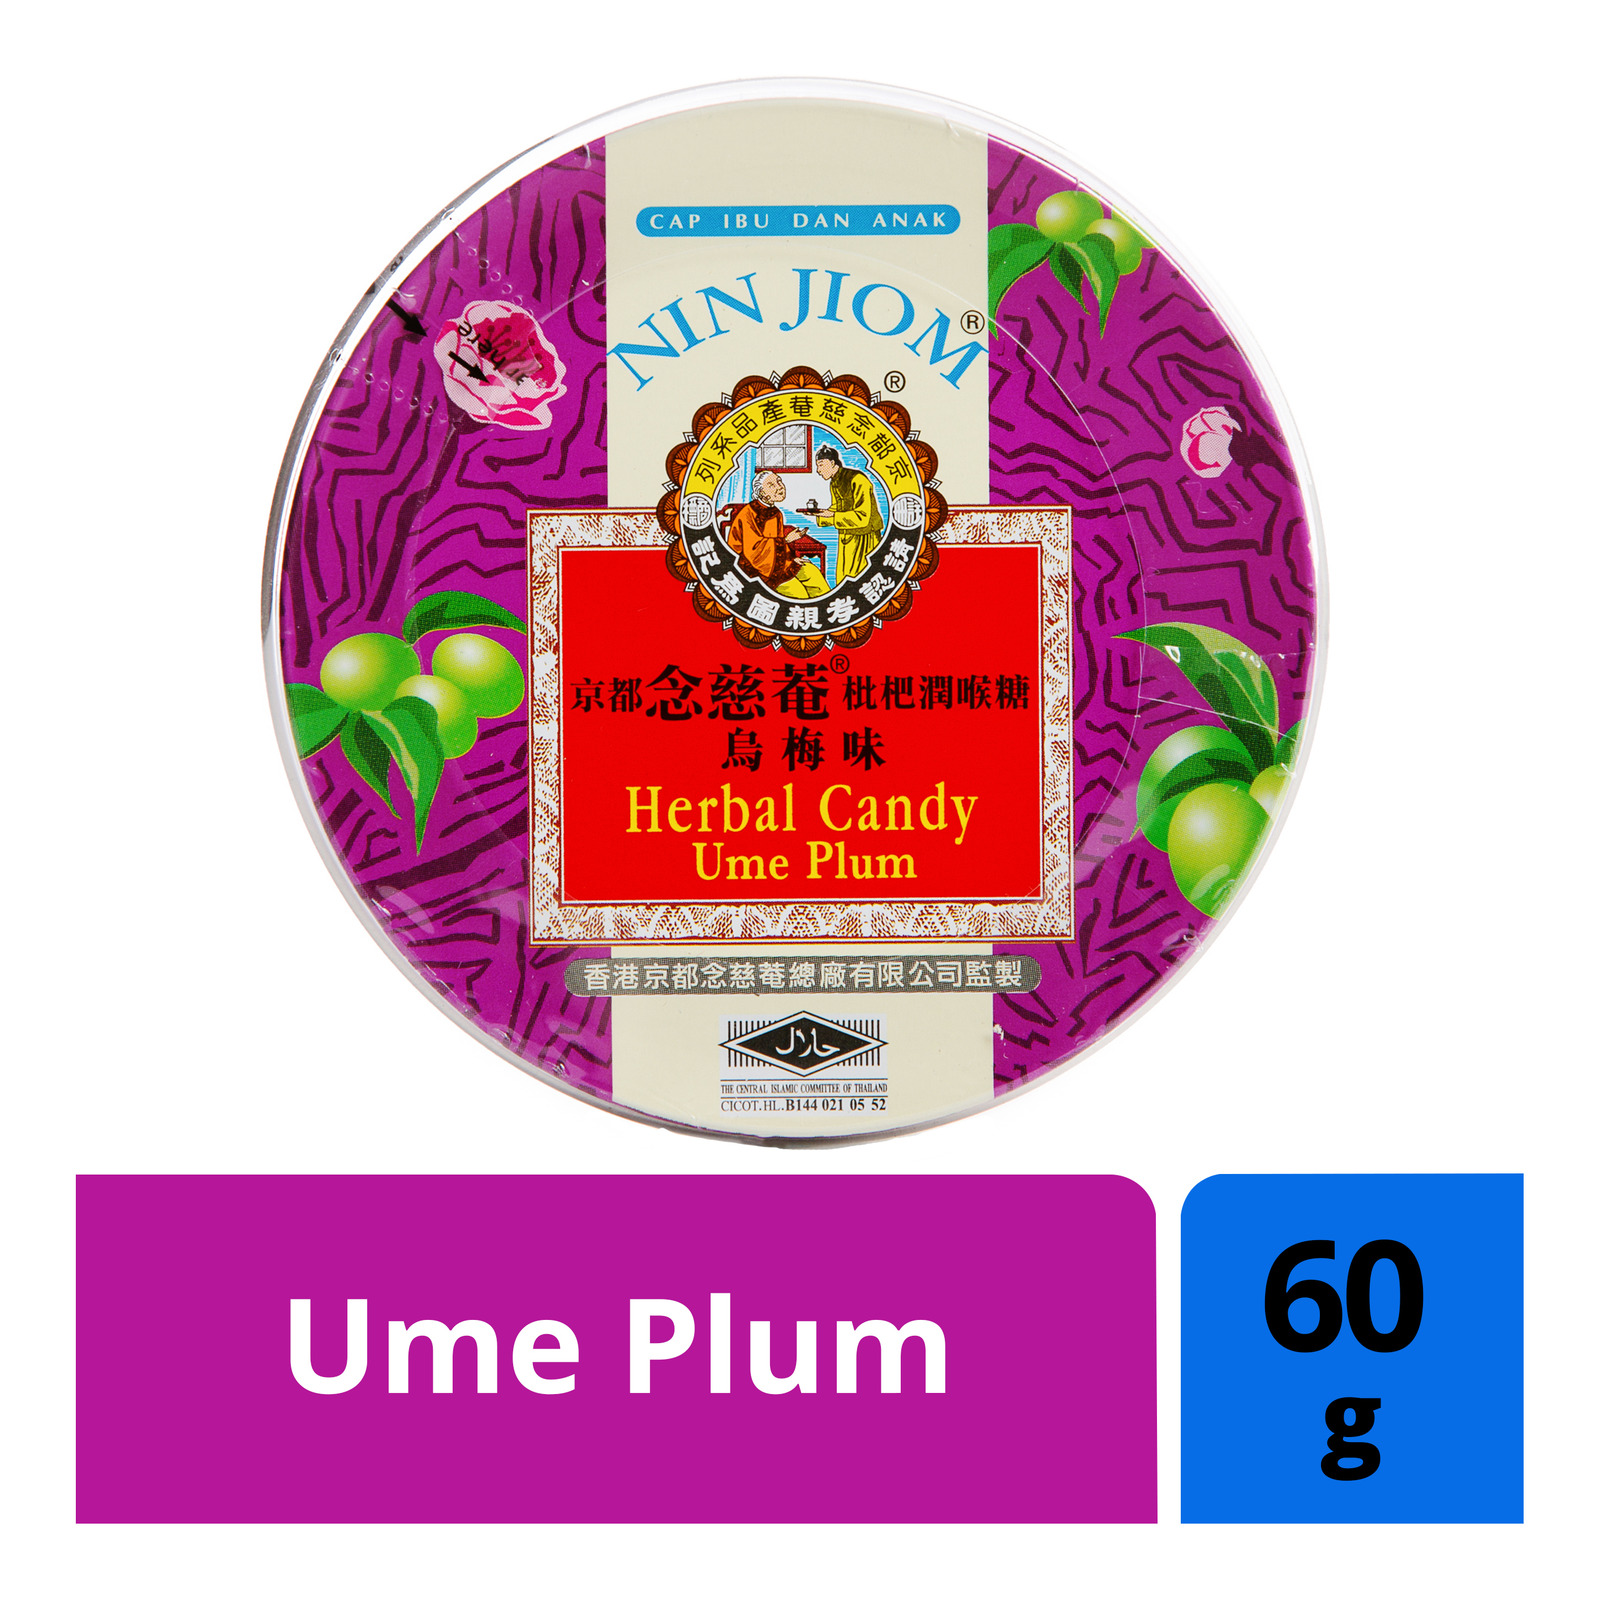 Nin Jiom Herbal Candy - Ume Plum (Tin)